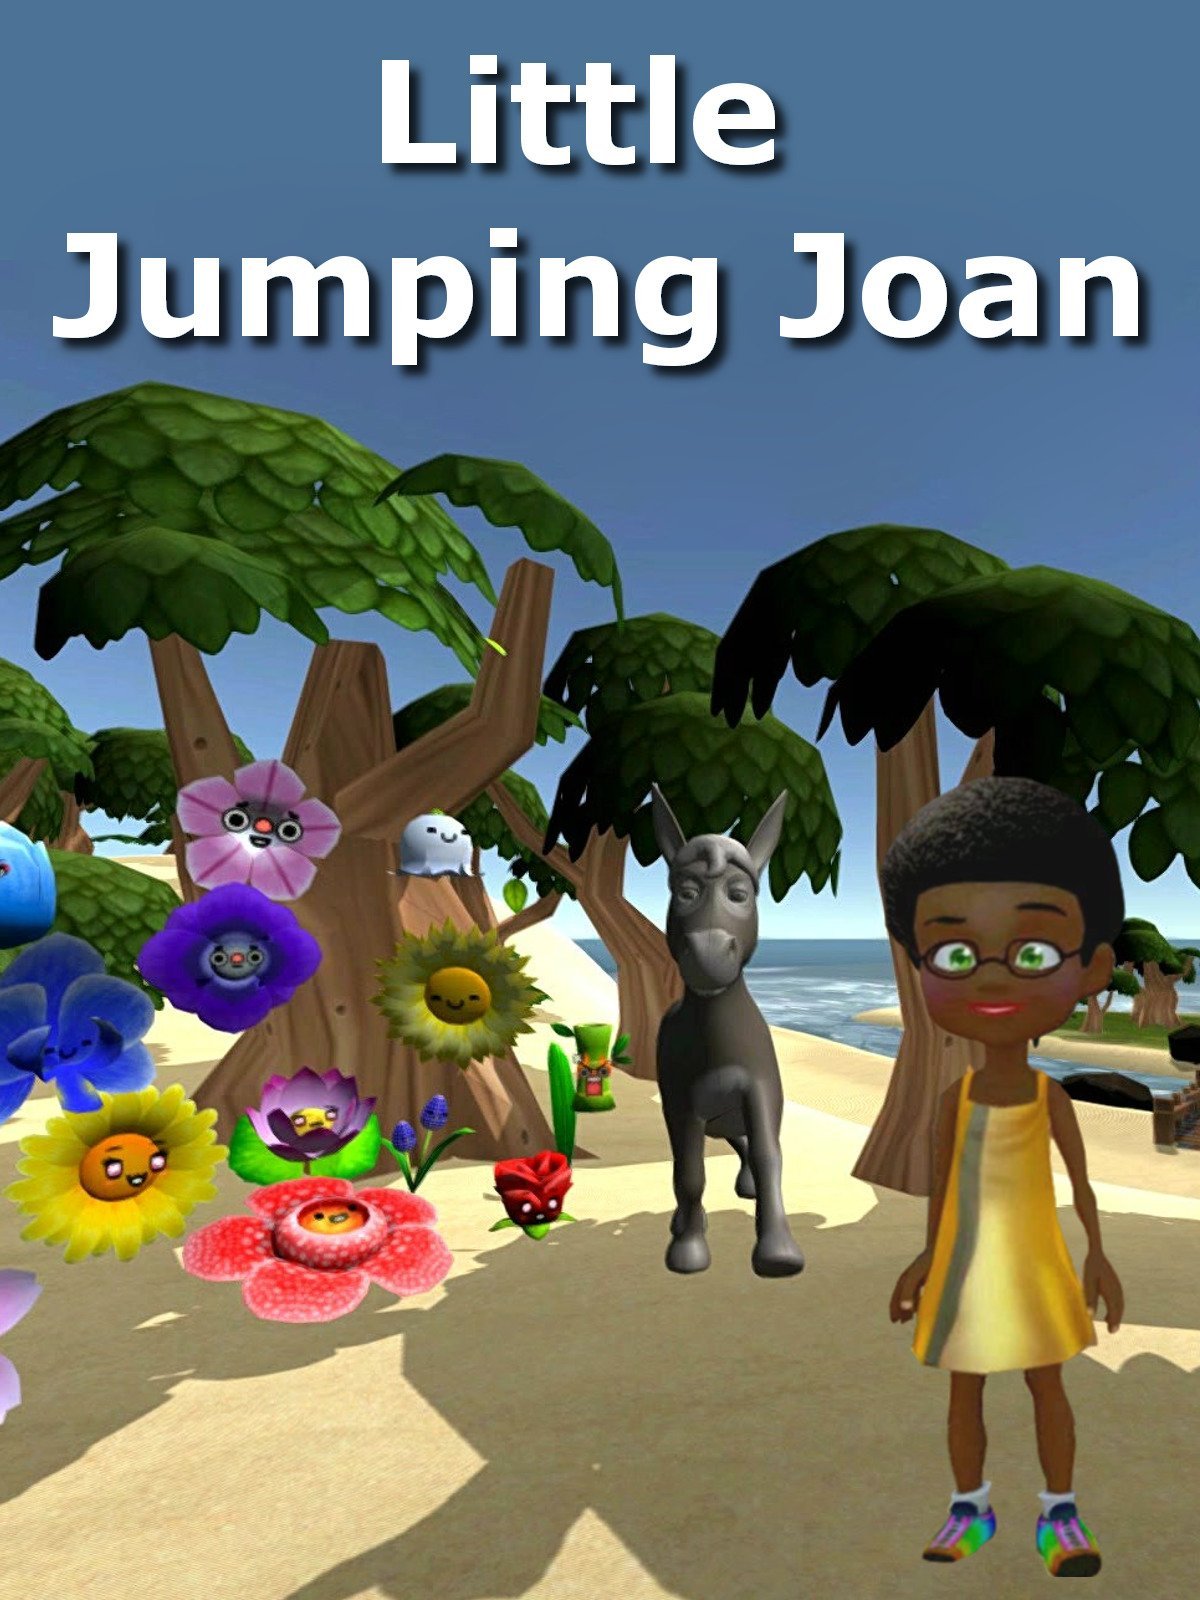 Little Jumping Joan on Amazon Prime Instant Video UK